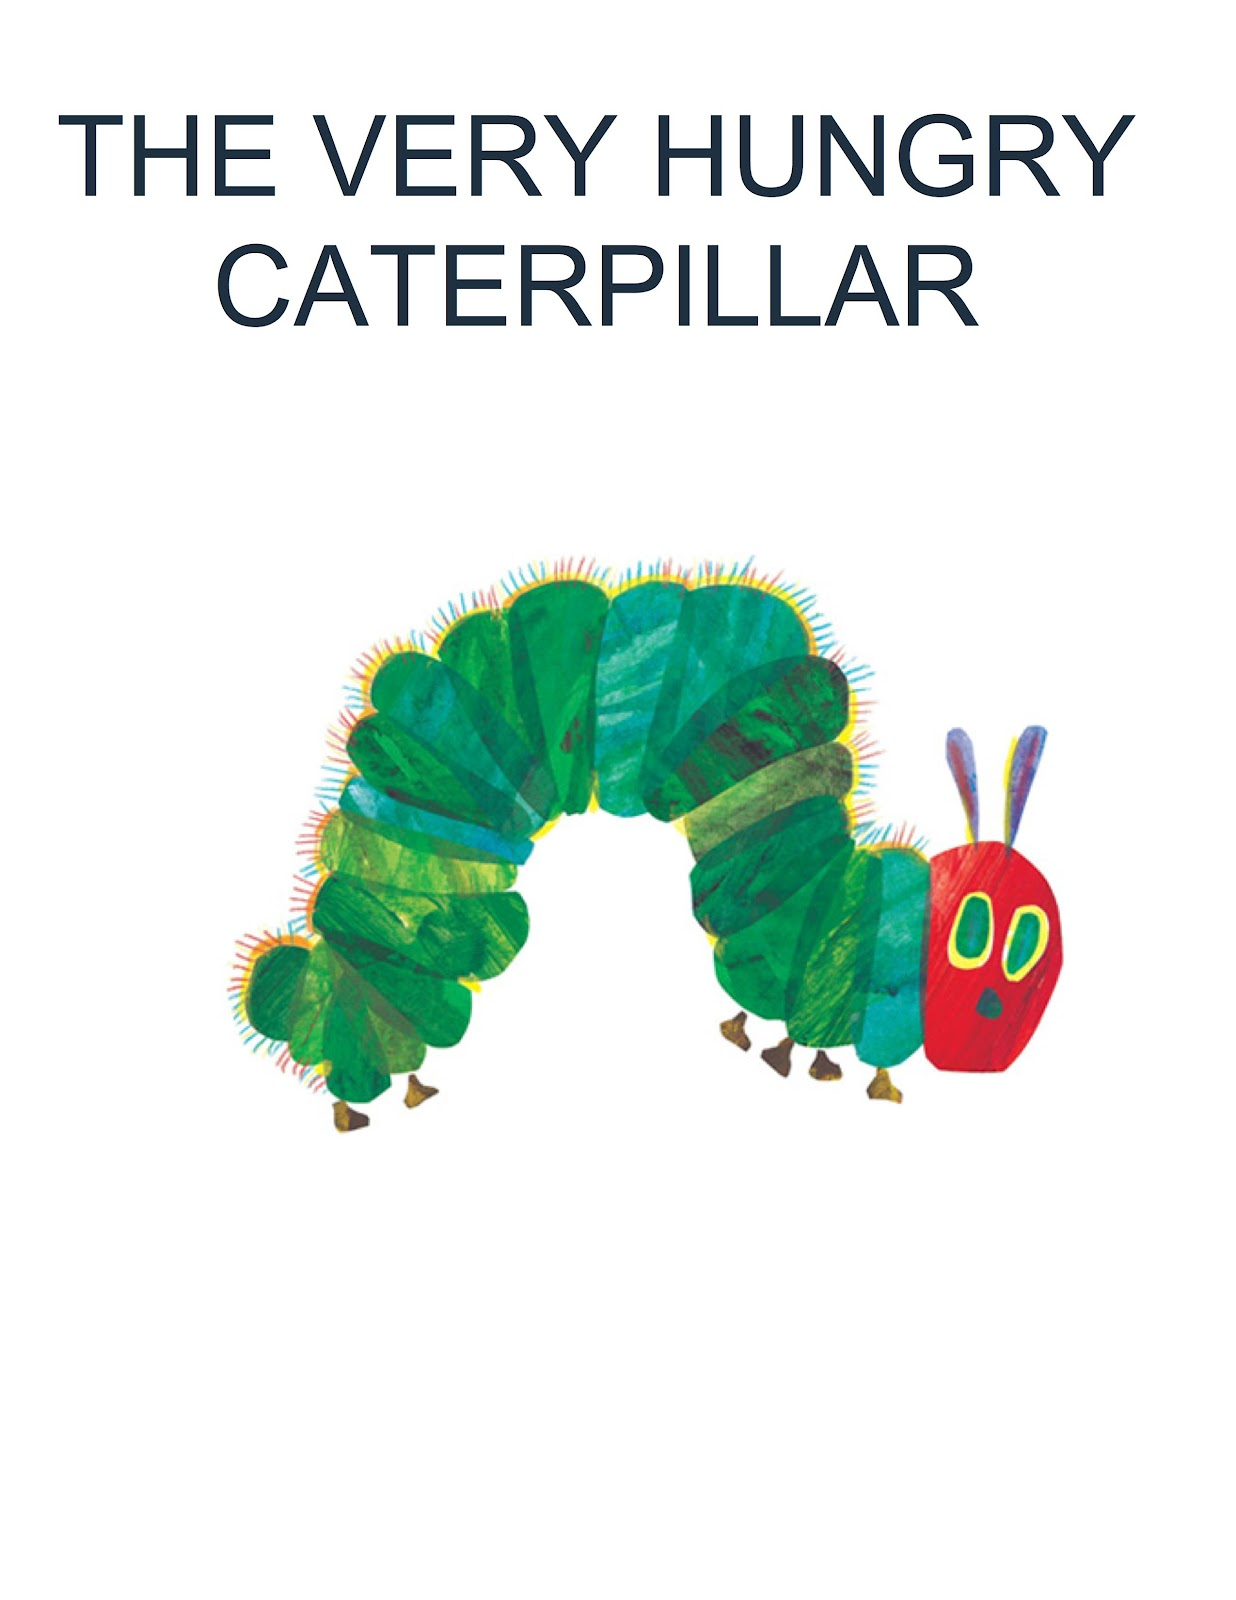 The Very Hungry Caterpillar Quotes QuotesGram